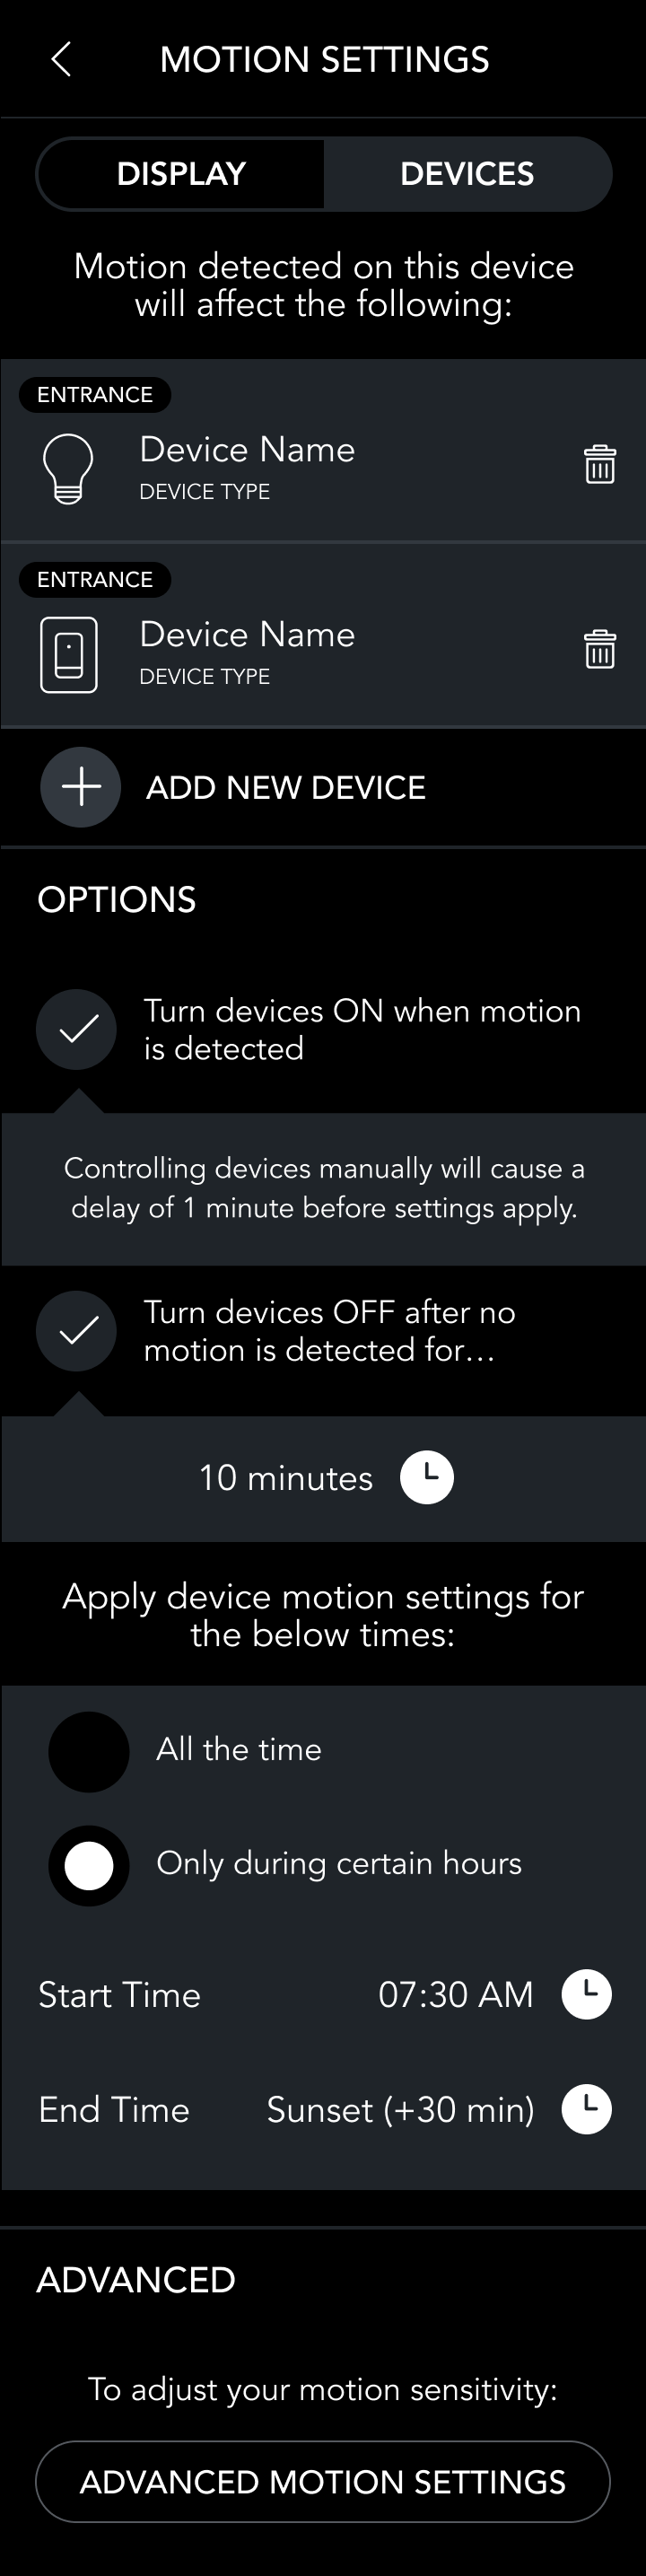 Settings_-_Motion_-_with_Devices_and_Times_-_Quick_Fix-1.png